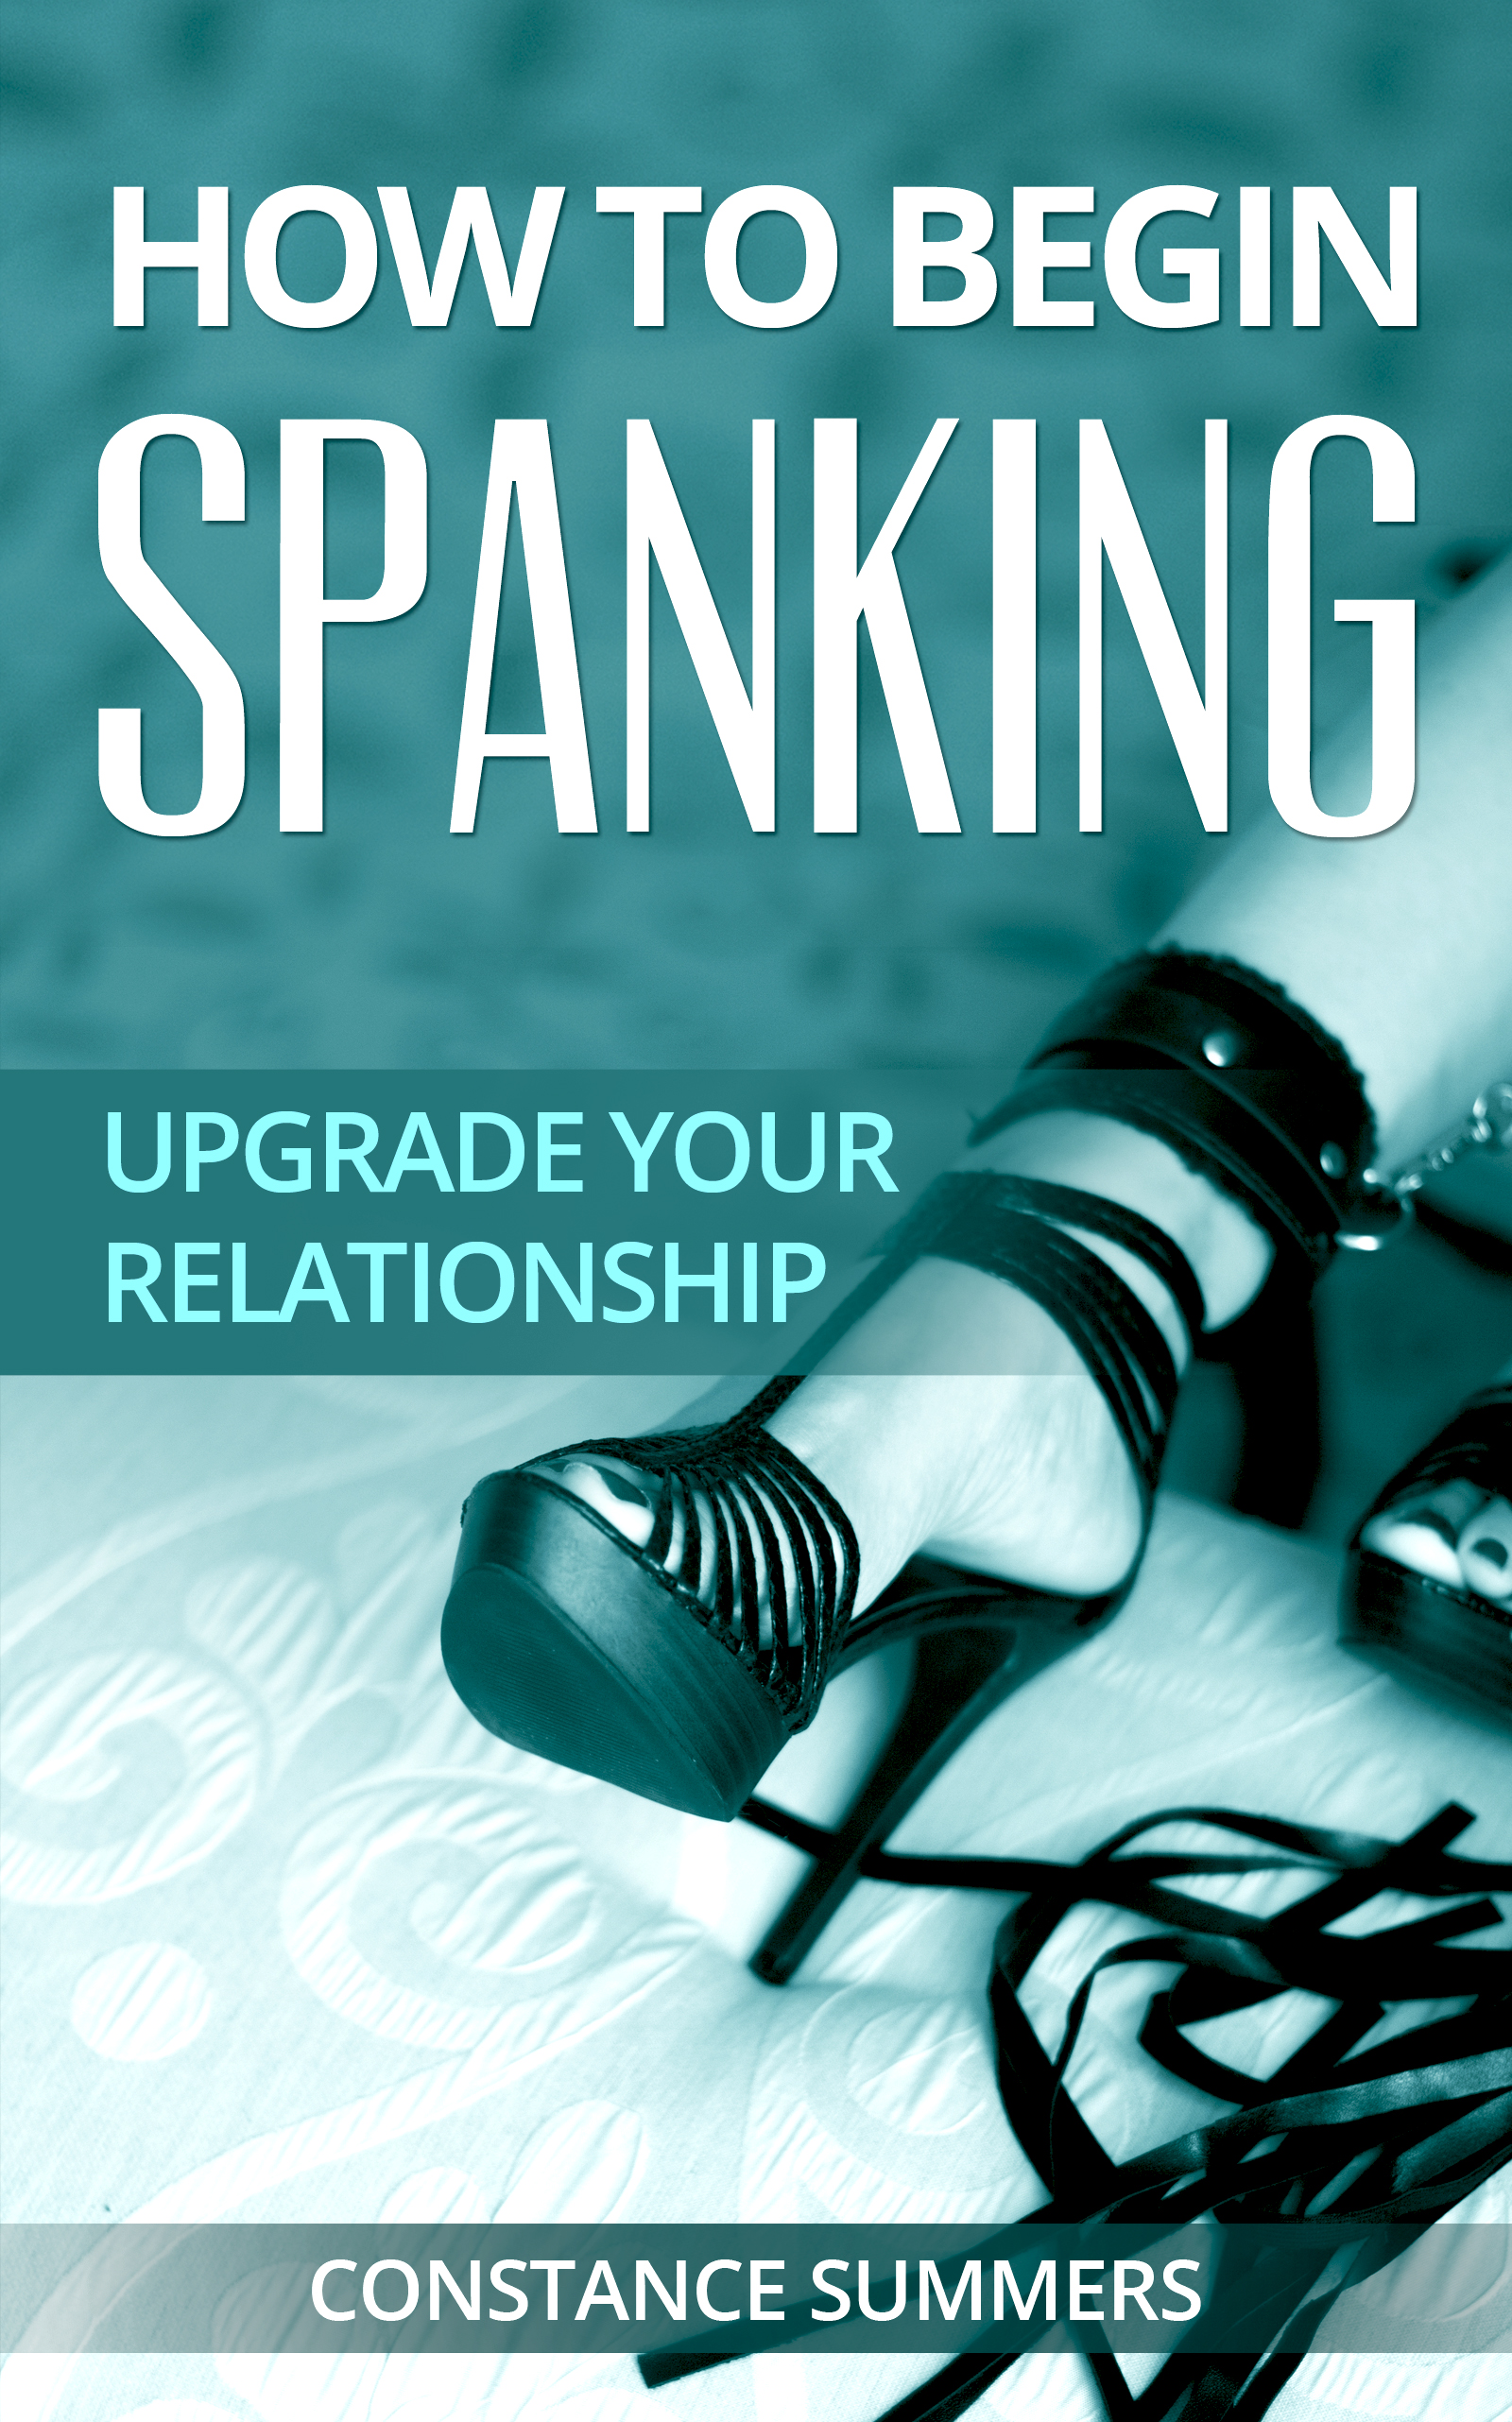 Can recommend husbands spank wives stories consider